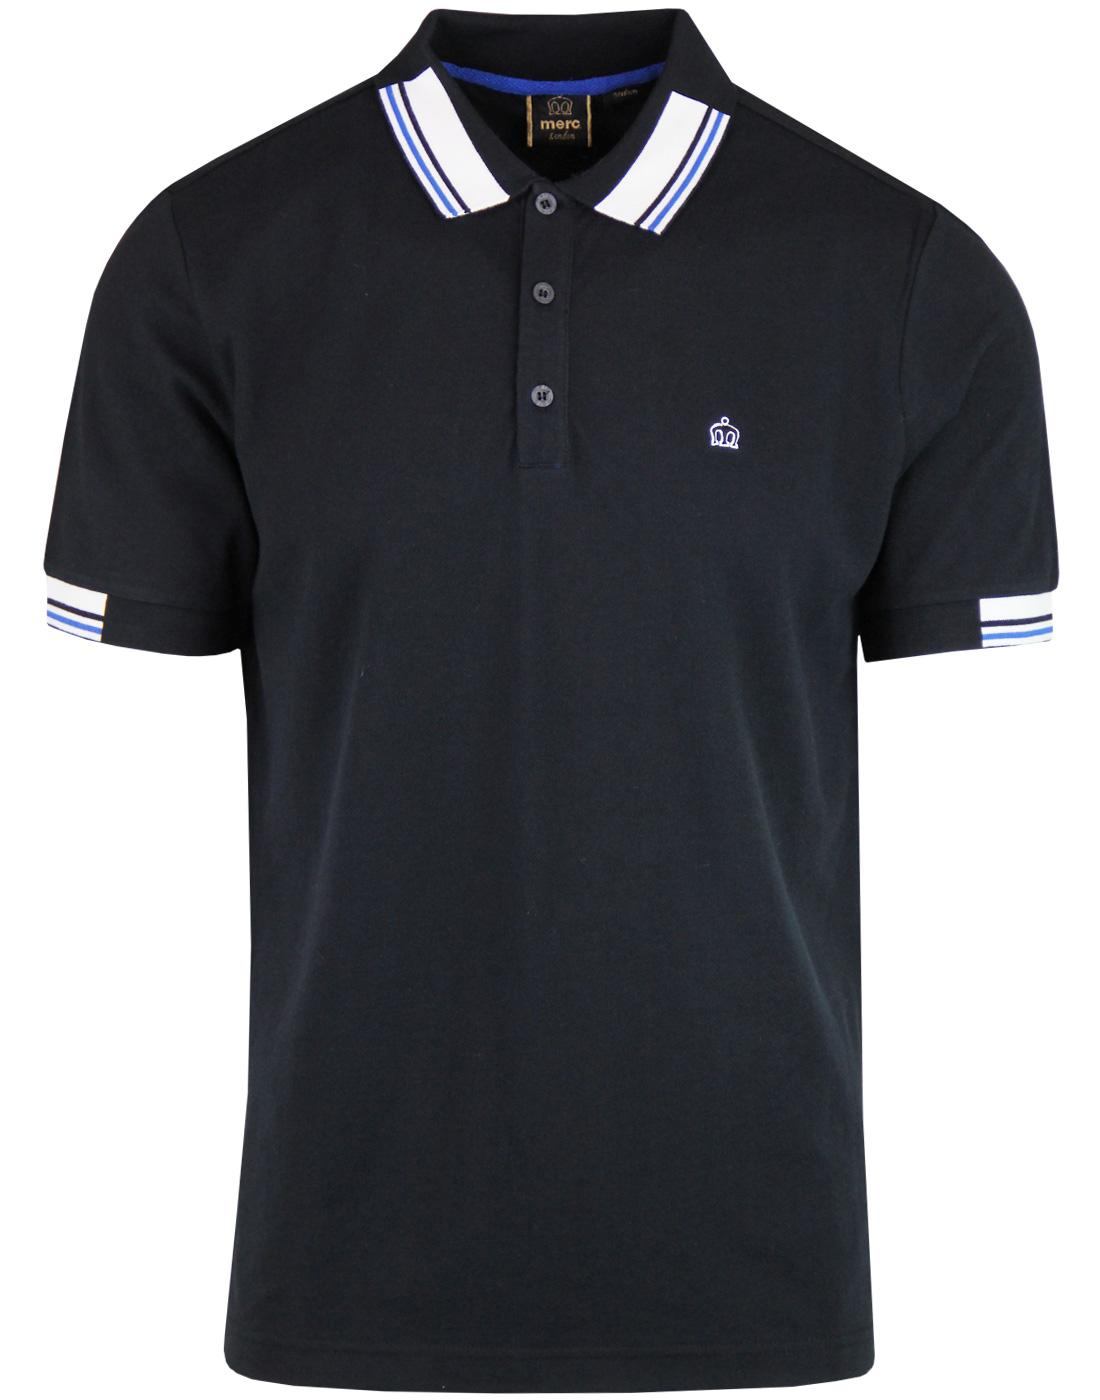 Brigade MERC Retro Mod Stripe Collar Polo Top (B)